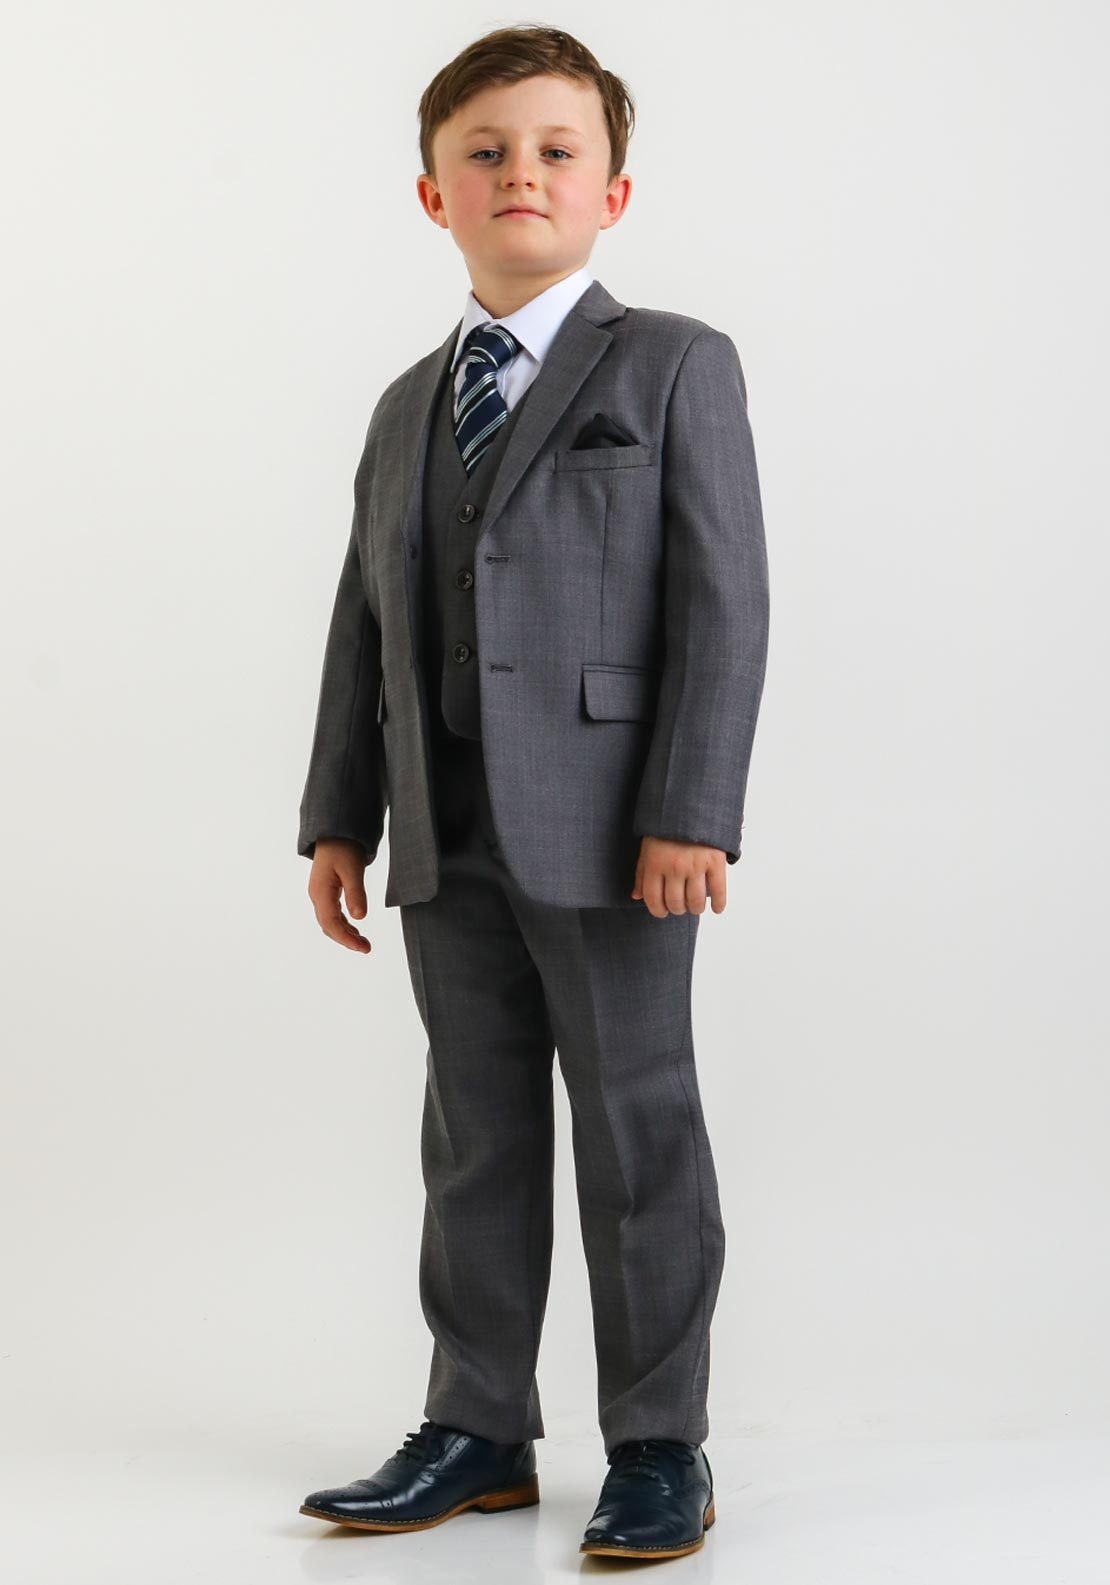 McElhinneys 3 Piece Suit with Shirt and Tie, Grey